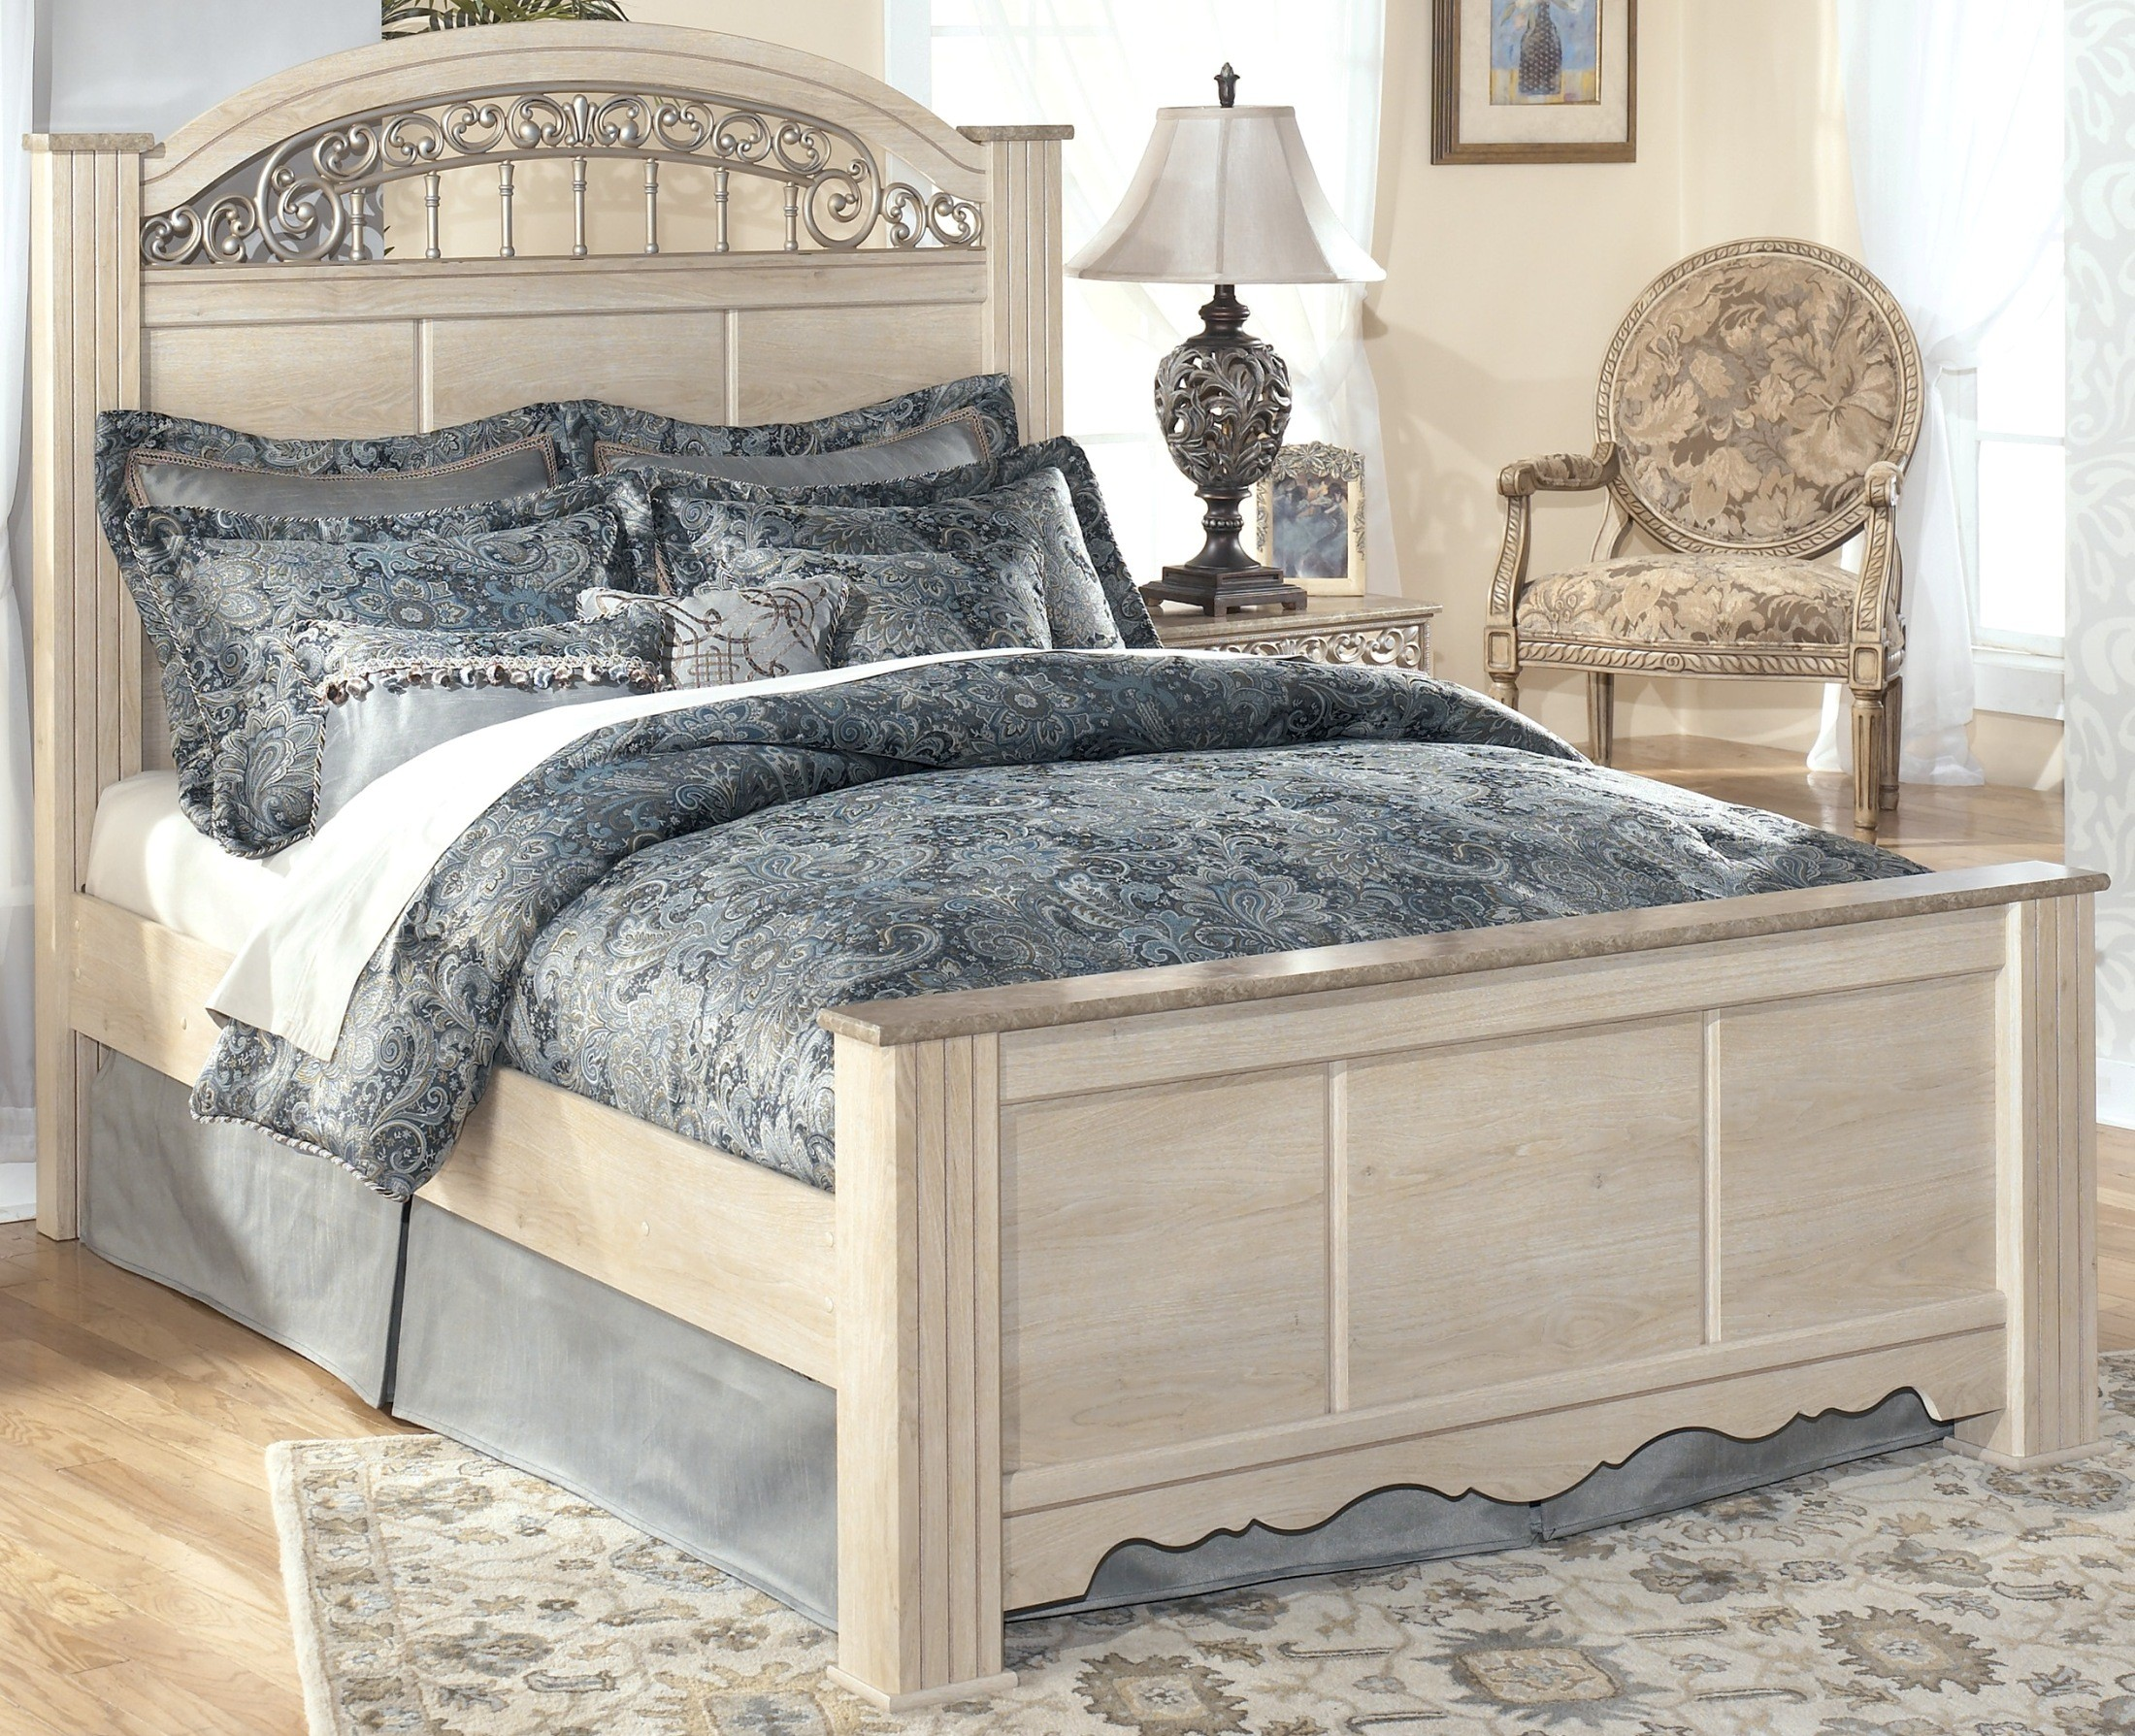 king poster bedroom sets. 415450 Catalina King Poster Bed from Ashley  B196 68 66 99 Coleman